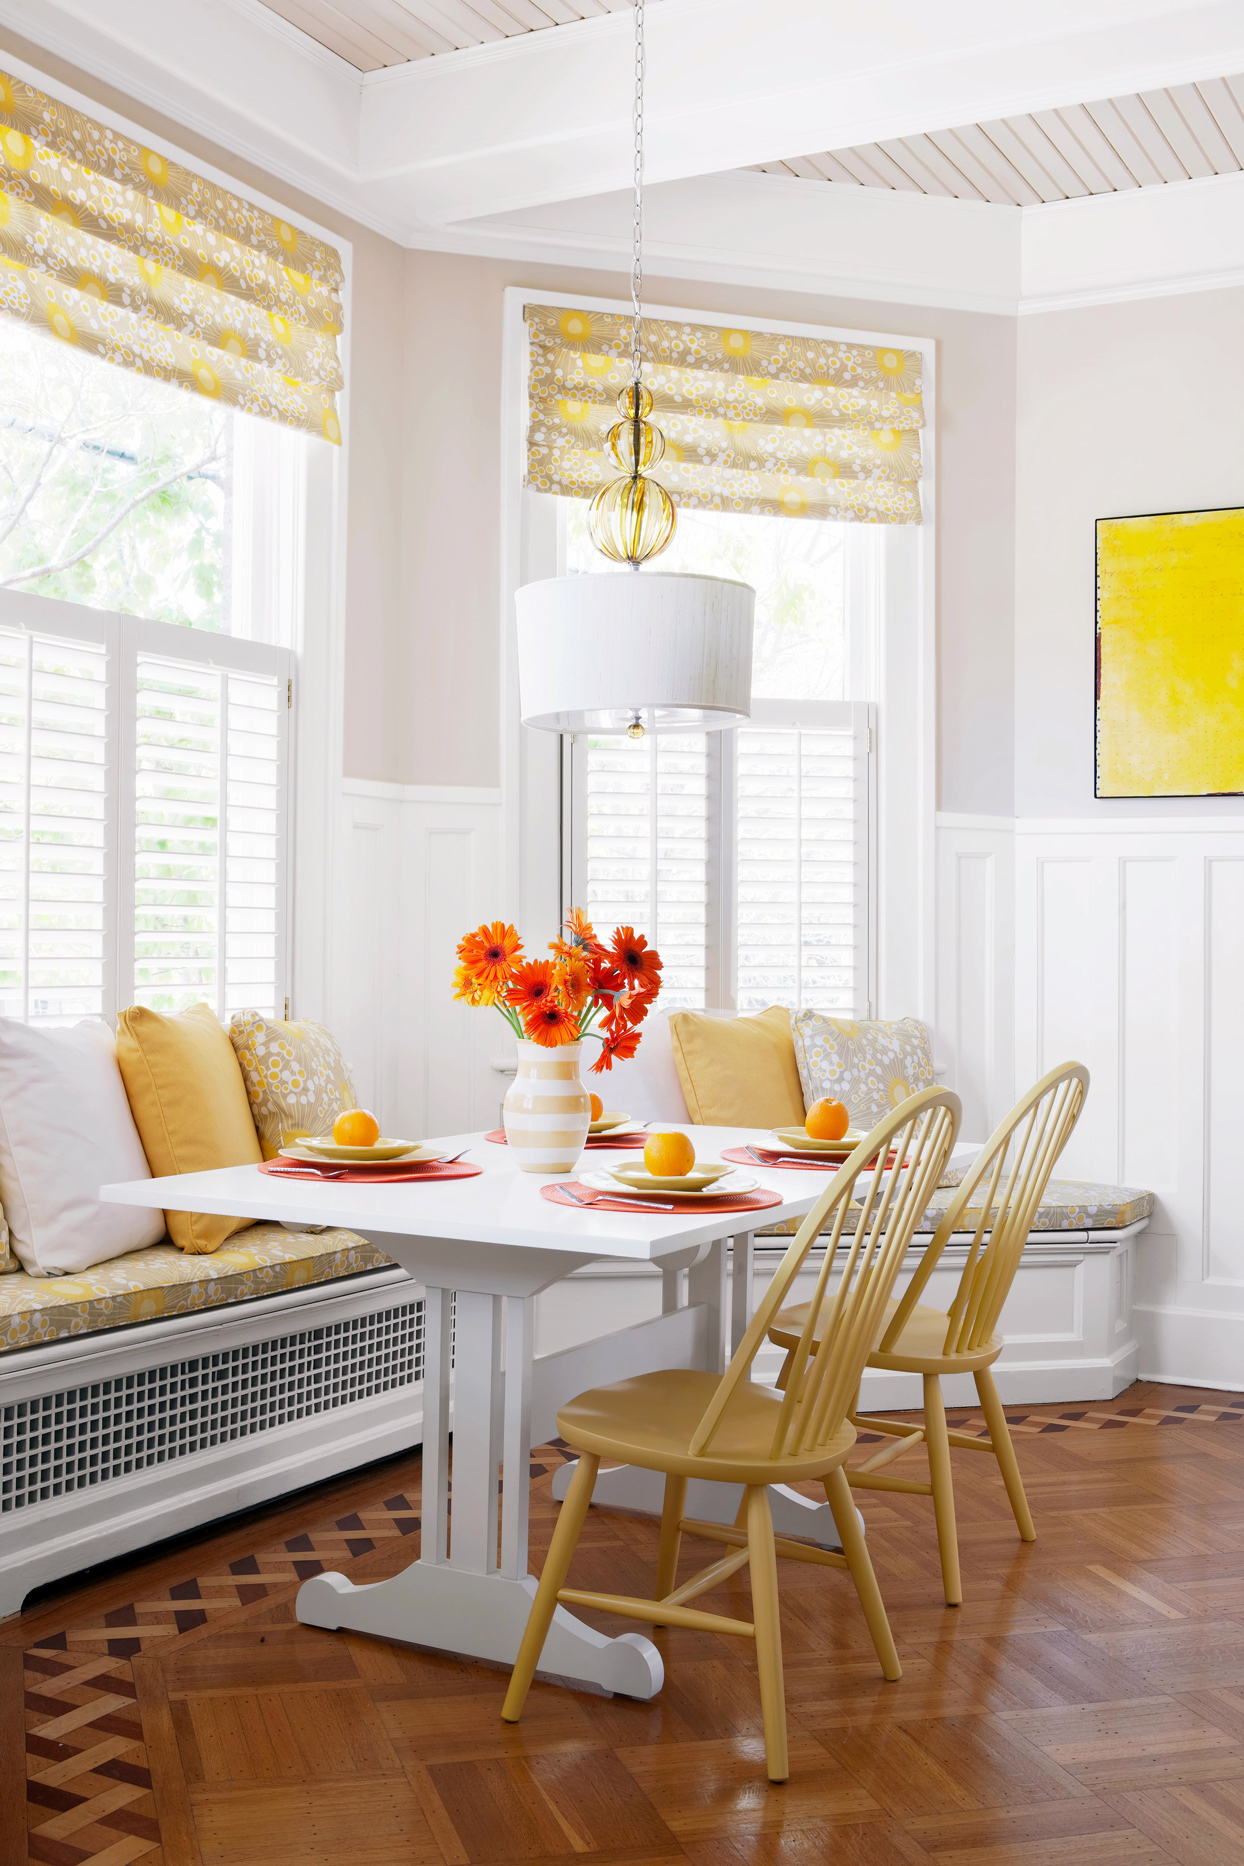 kitchen decorated in yellow, orange, and white